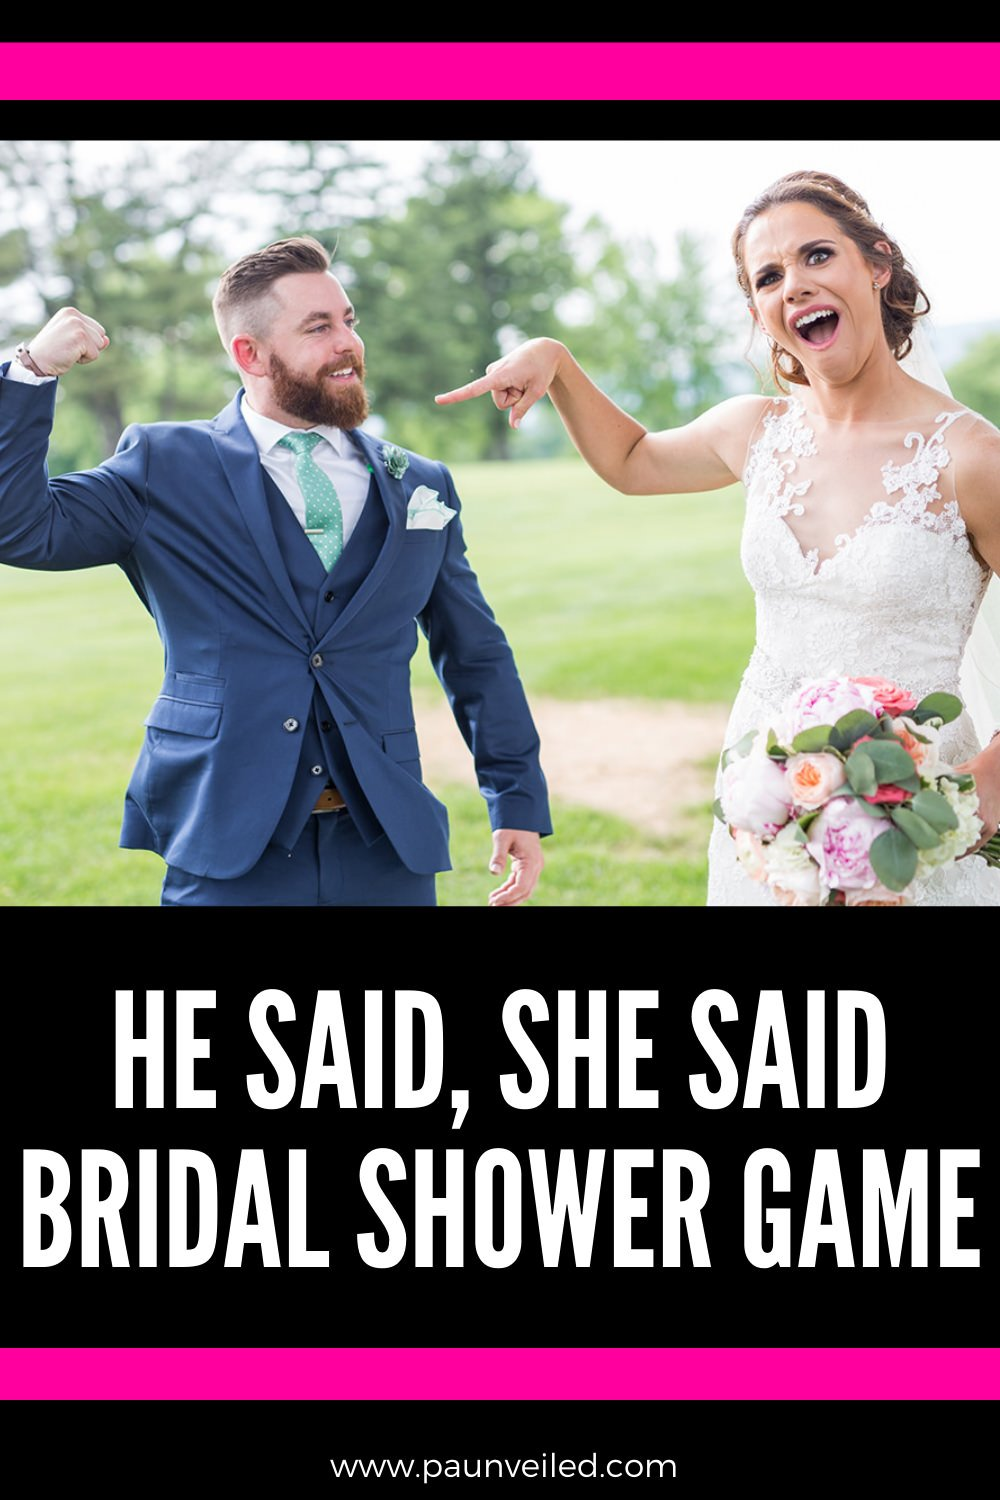 A pinterest photo for the he said she said bridal shower game post